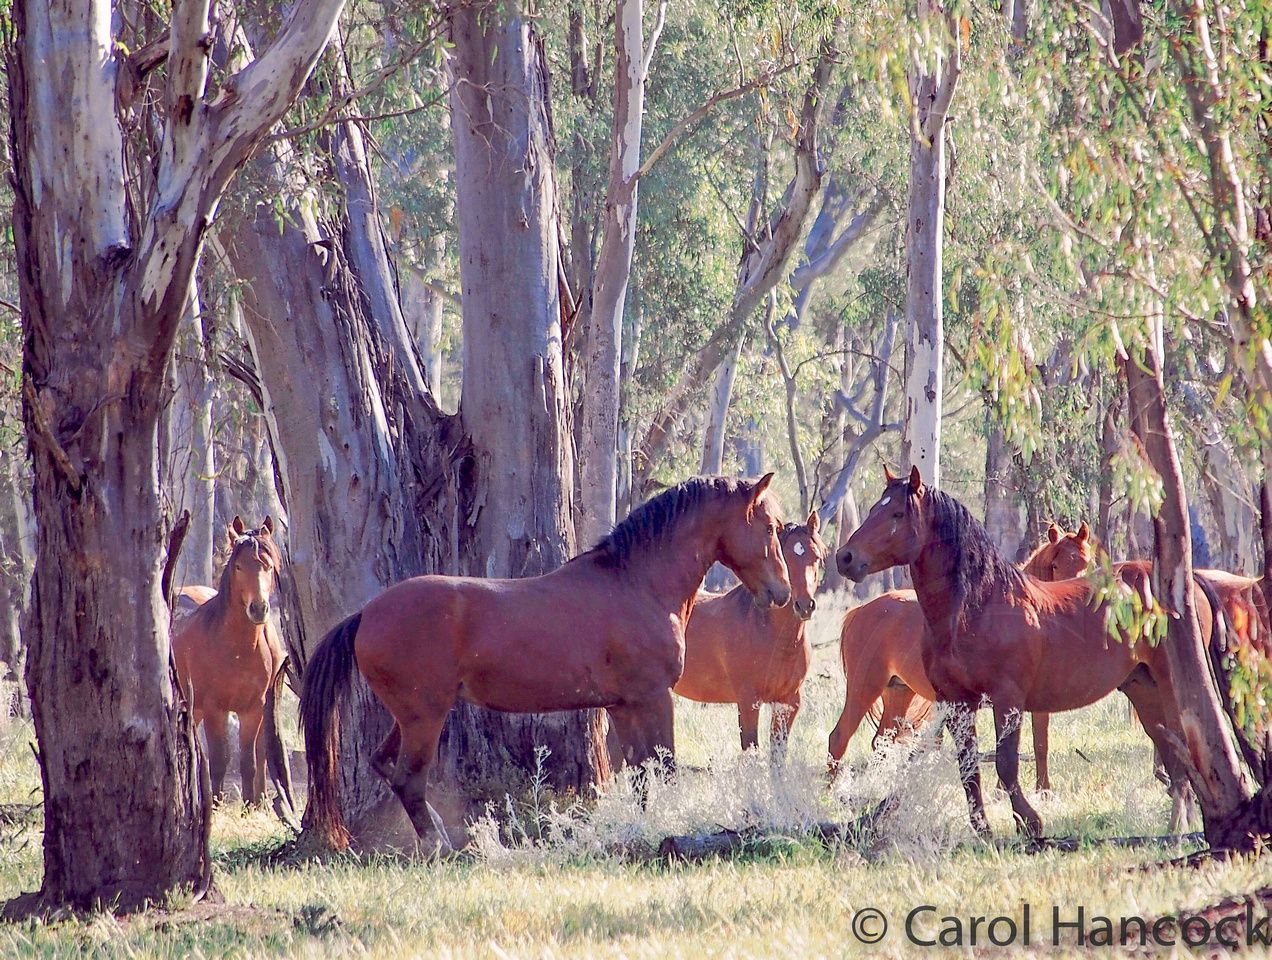 Equine Dating Australia - Join for free & find love today